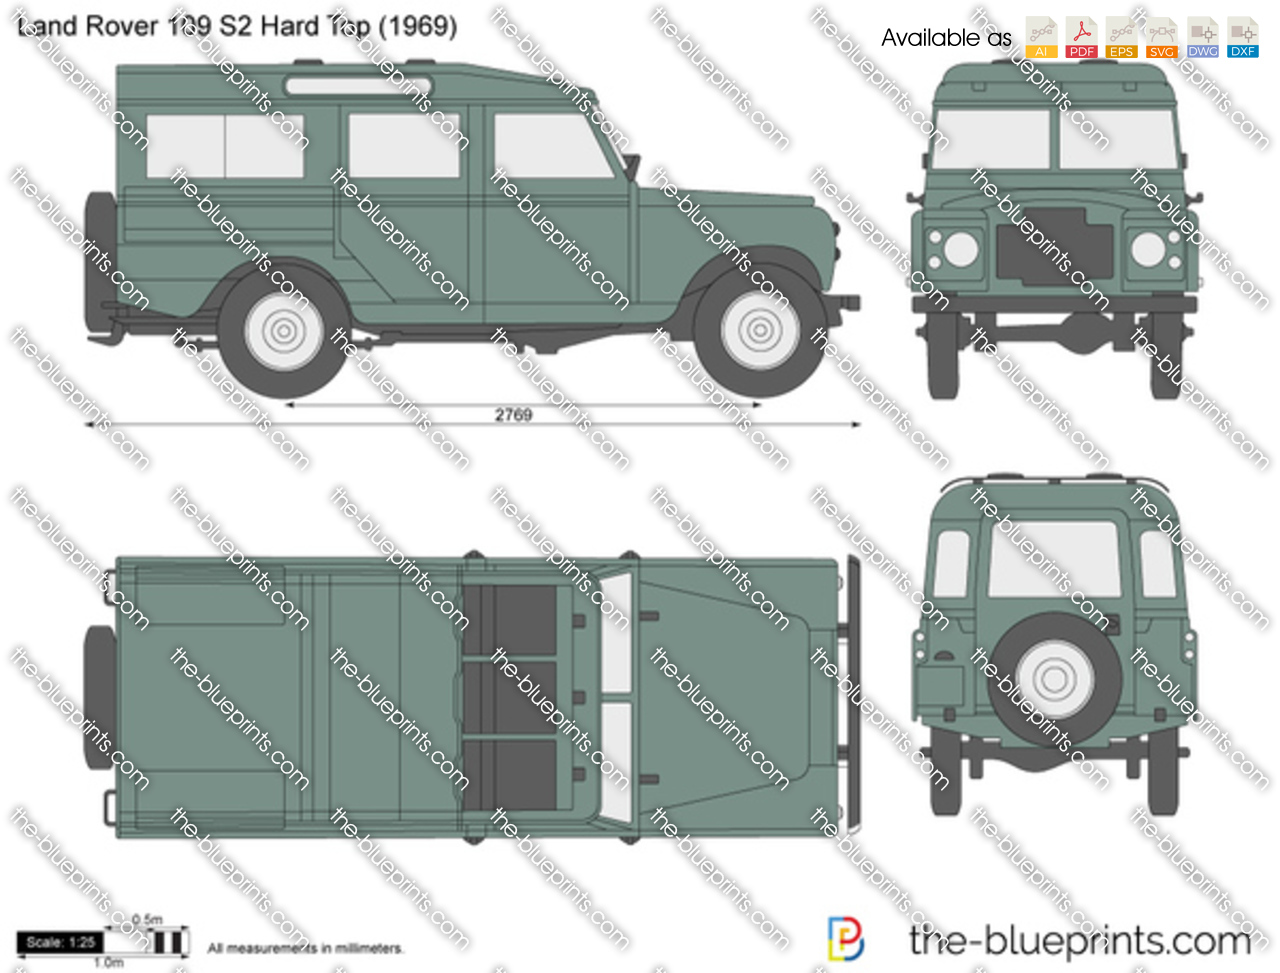 The Blueprints Com Vector Drawing Land Rover 109 S2